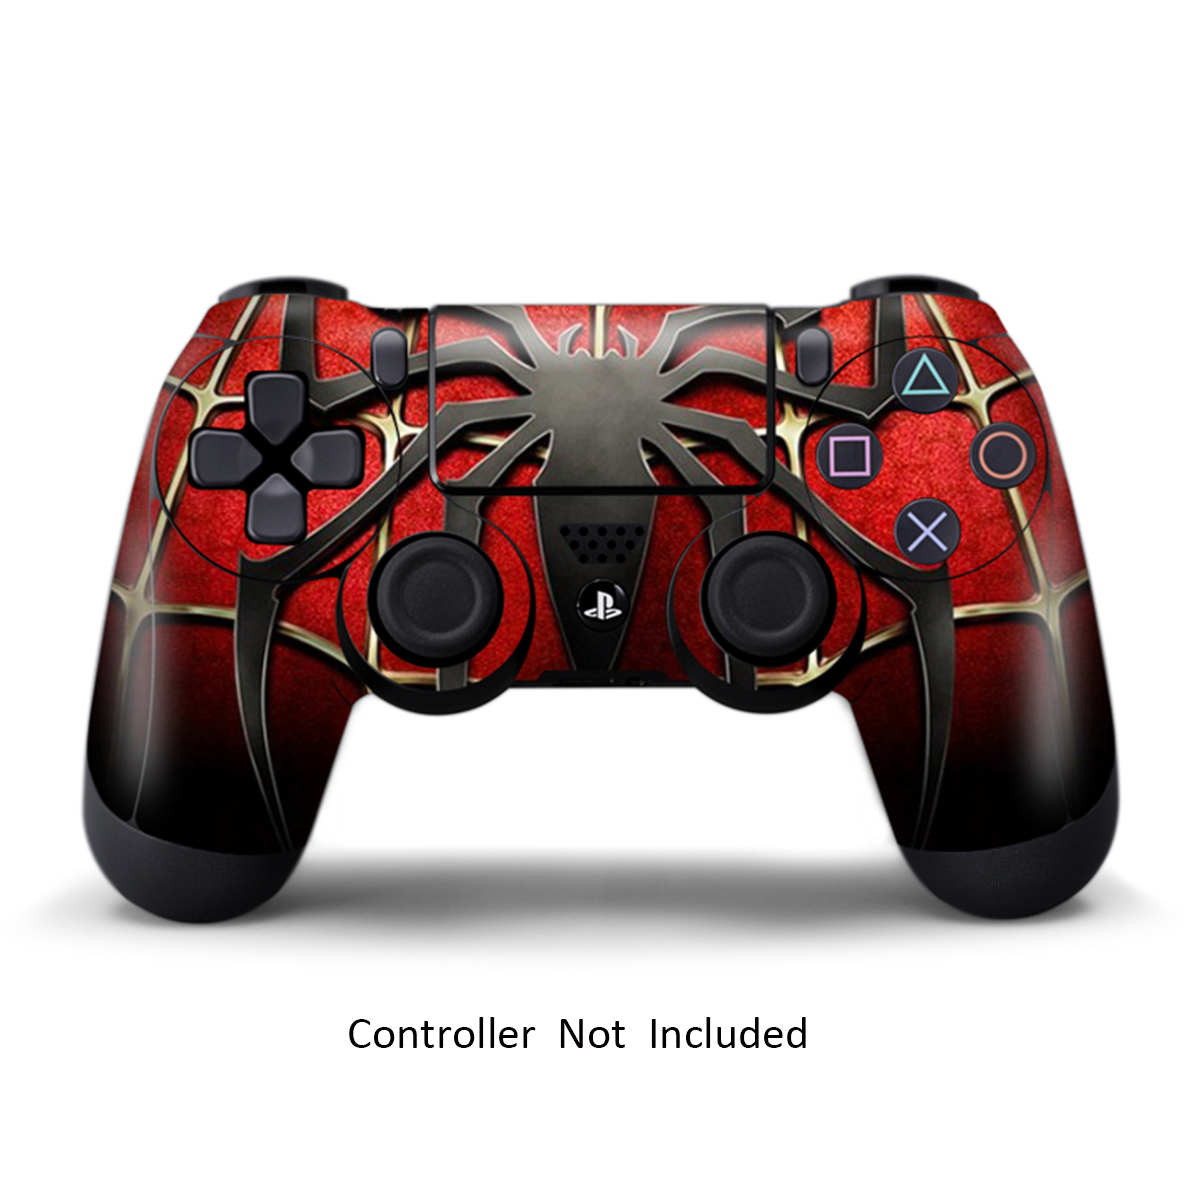 Skin Sticker for PS4 Controller Sony Playstaition 4 Games Decal Vinyl Dualshock 4 Remote Skin Widow Maker Black